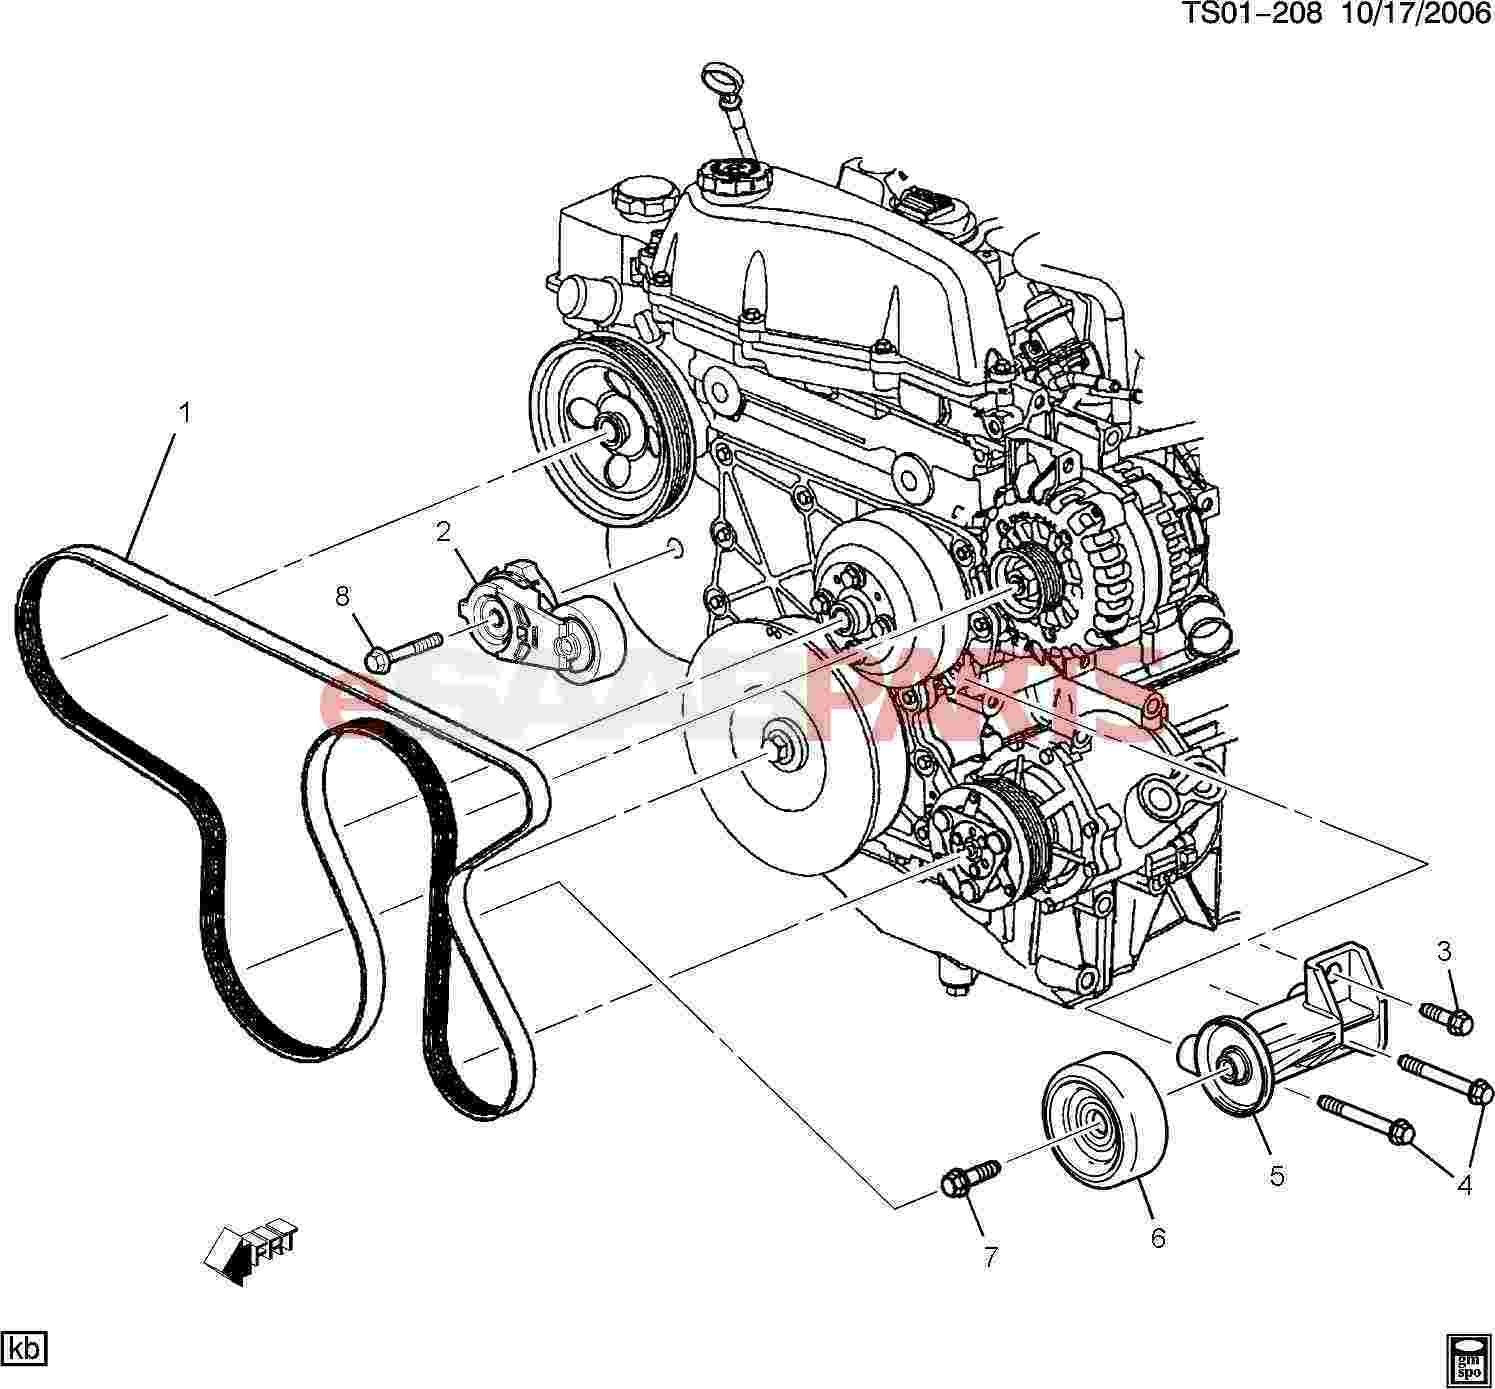 hight resolution of 2000 toyota corolla engine diagram saab bolt hfh m10x1 5 35 32thd 22 3